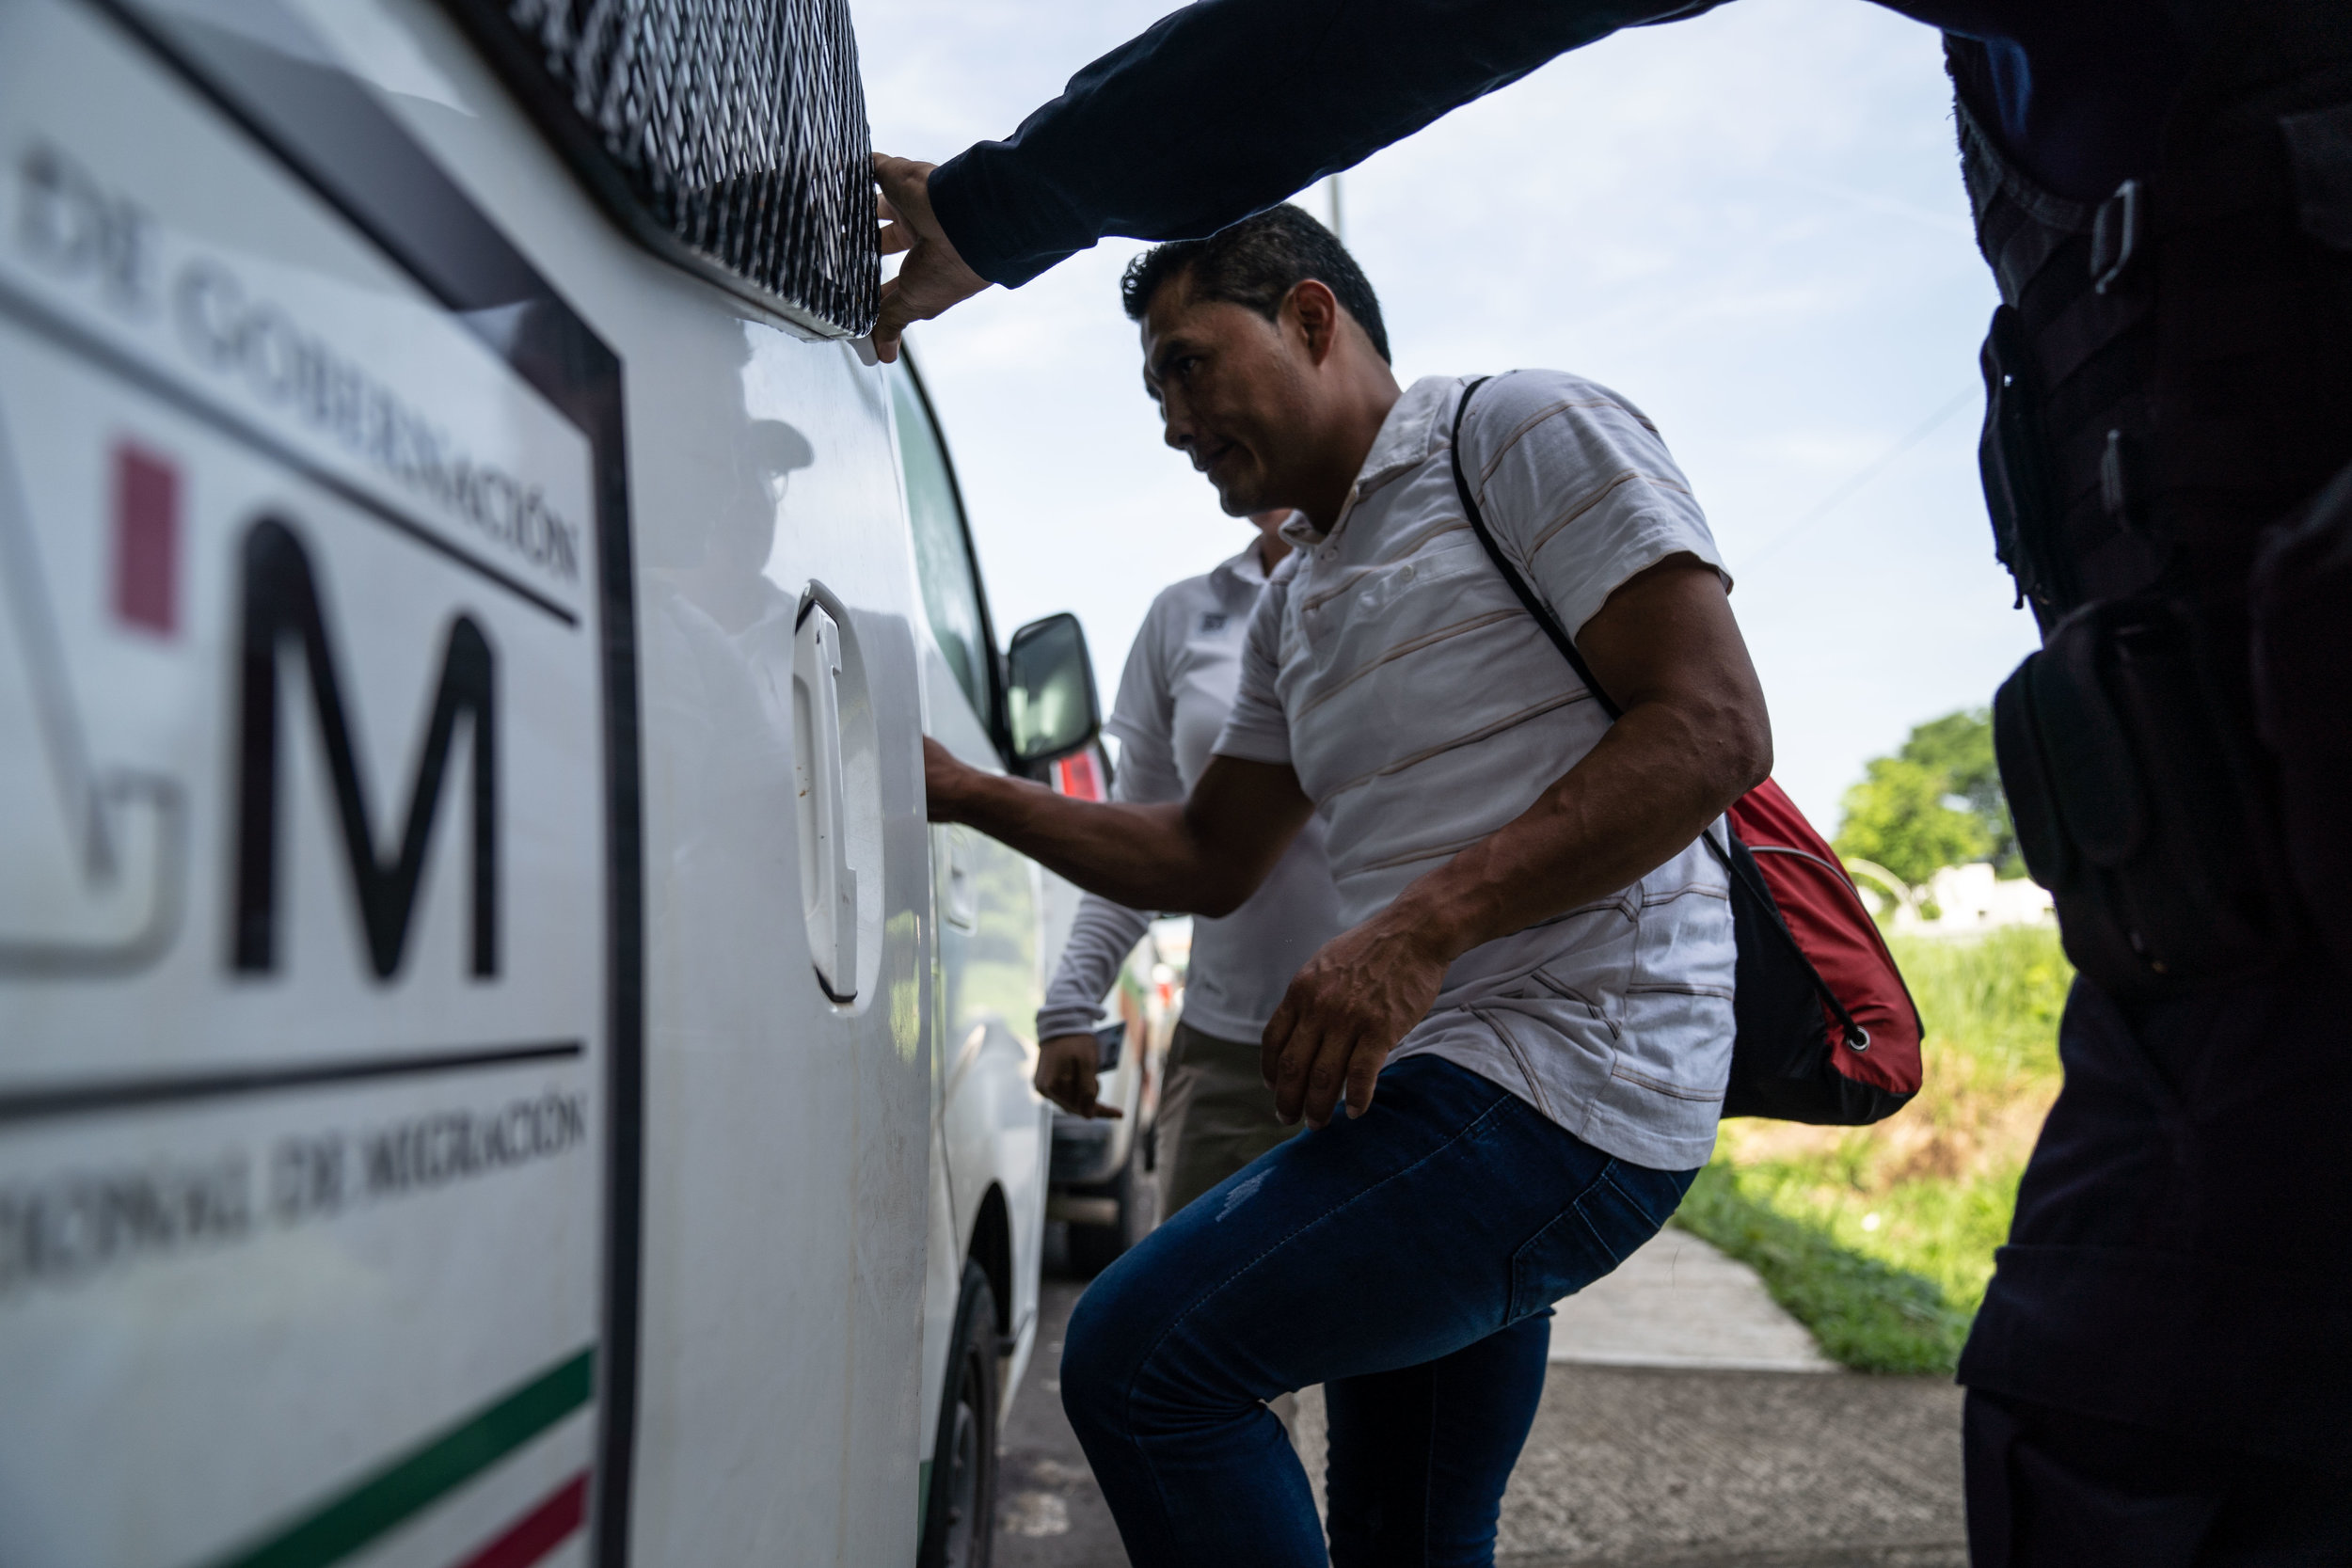 An undocumented migrant is detained at a checkpoint in Tapachula, Mexico in June, 2019.